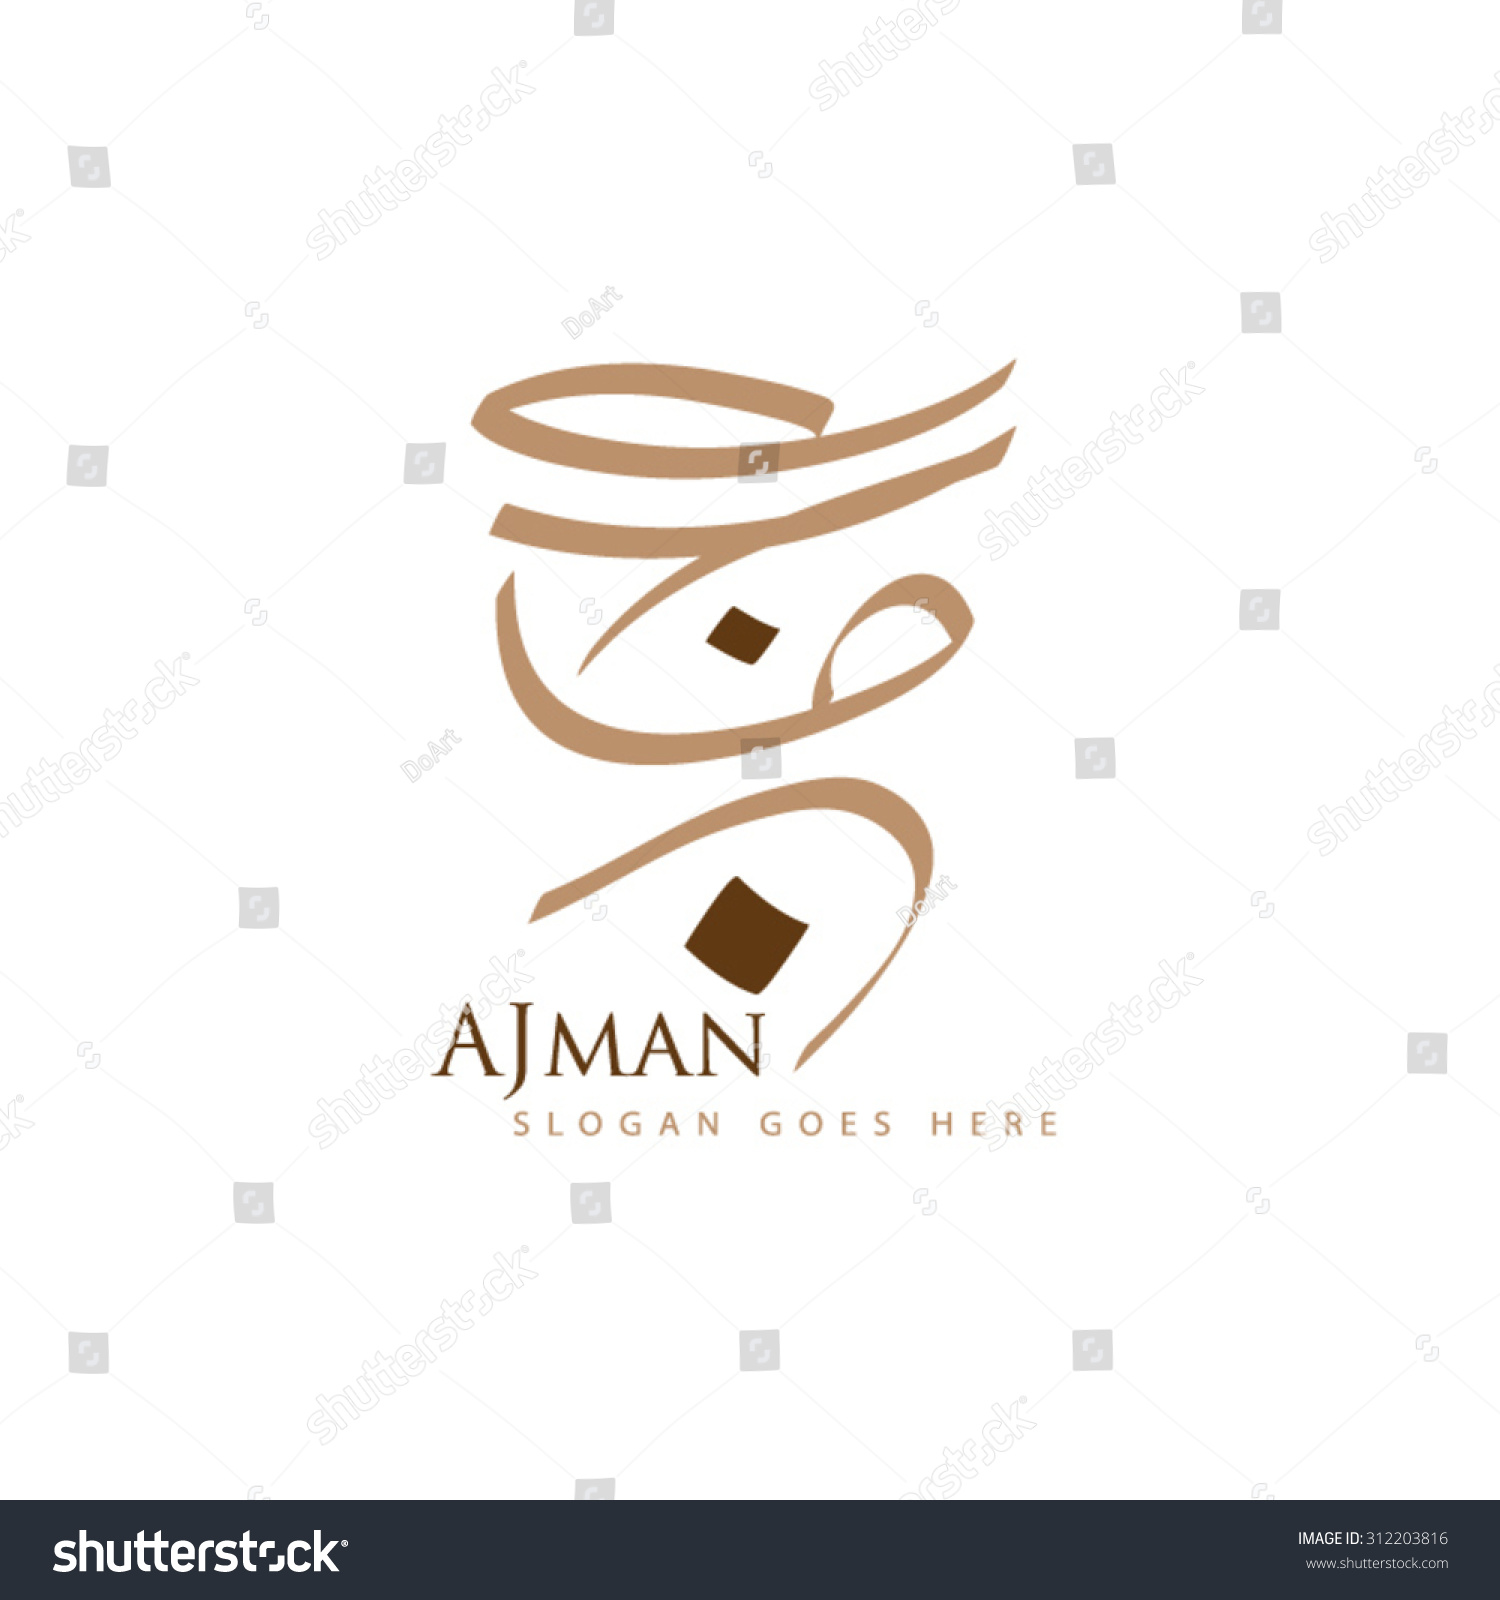 Ajman logo illustrator file created by stock vector Calligraphy logo